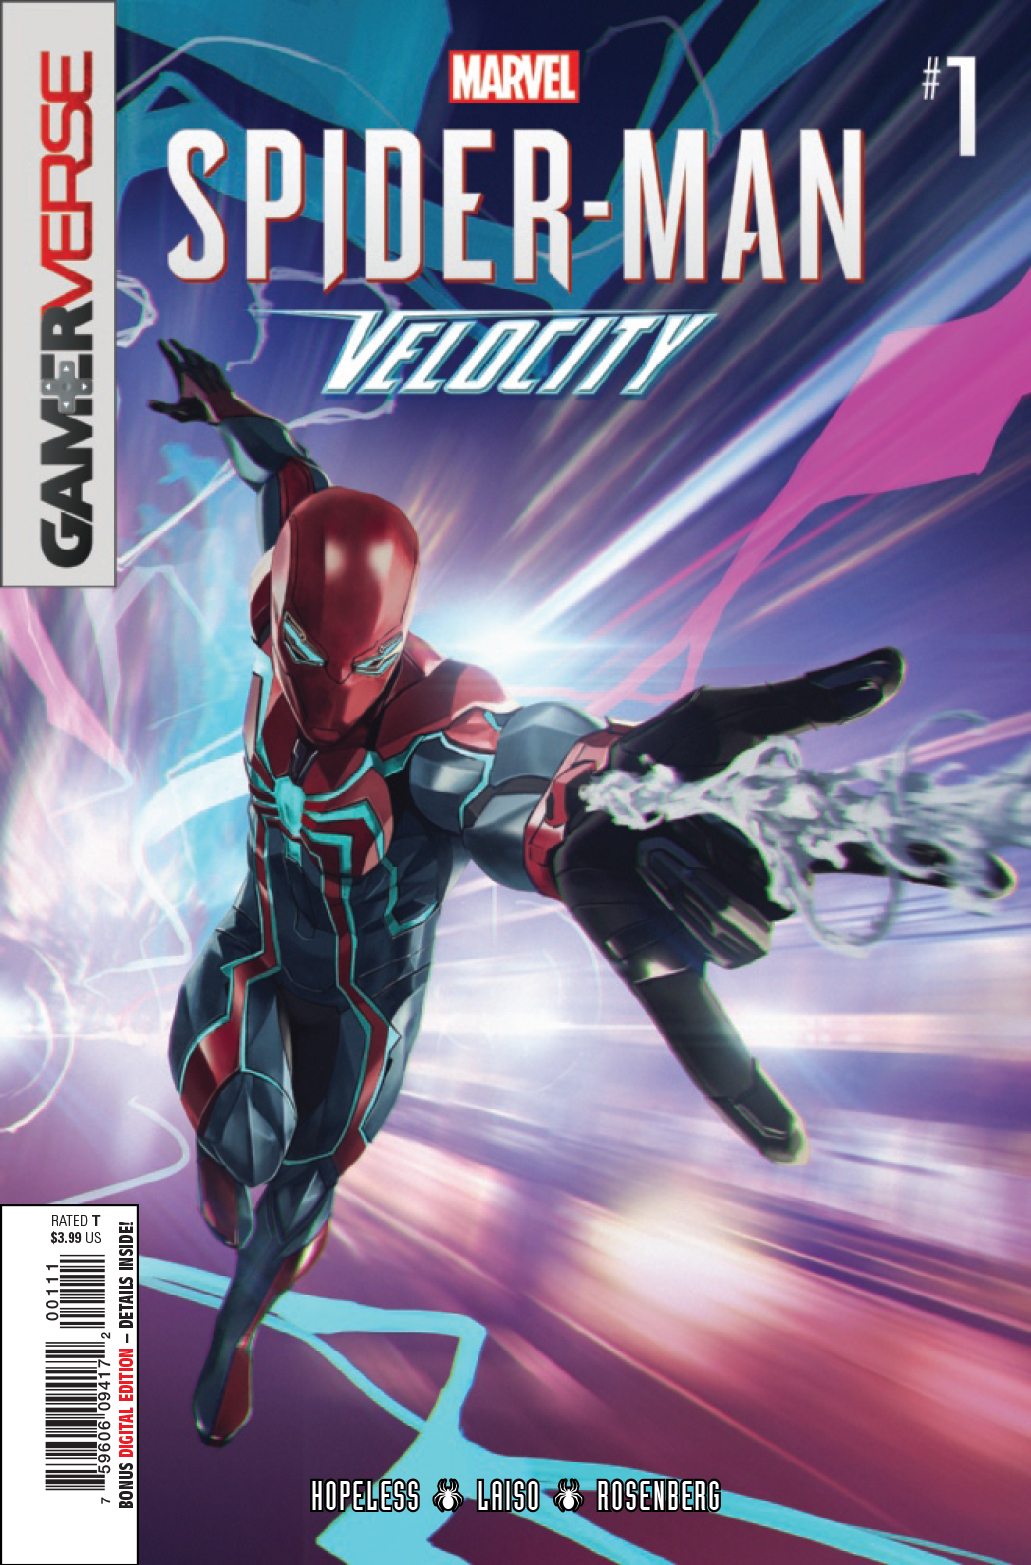 SPIDER-MAN VELOCITY #1 (OF 5)